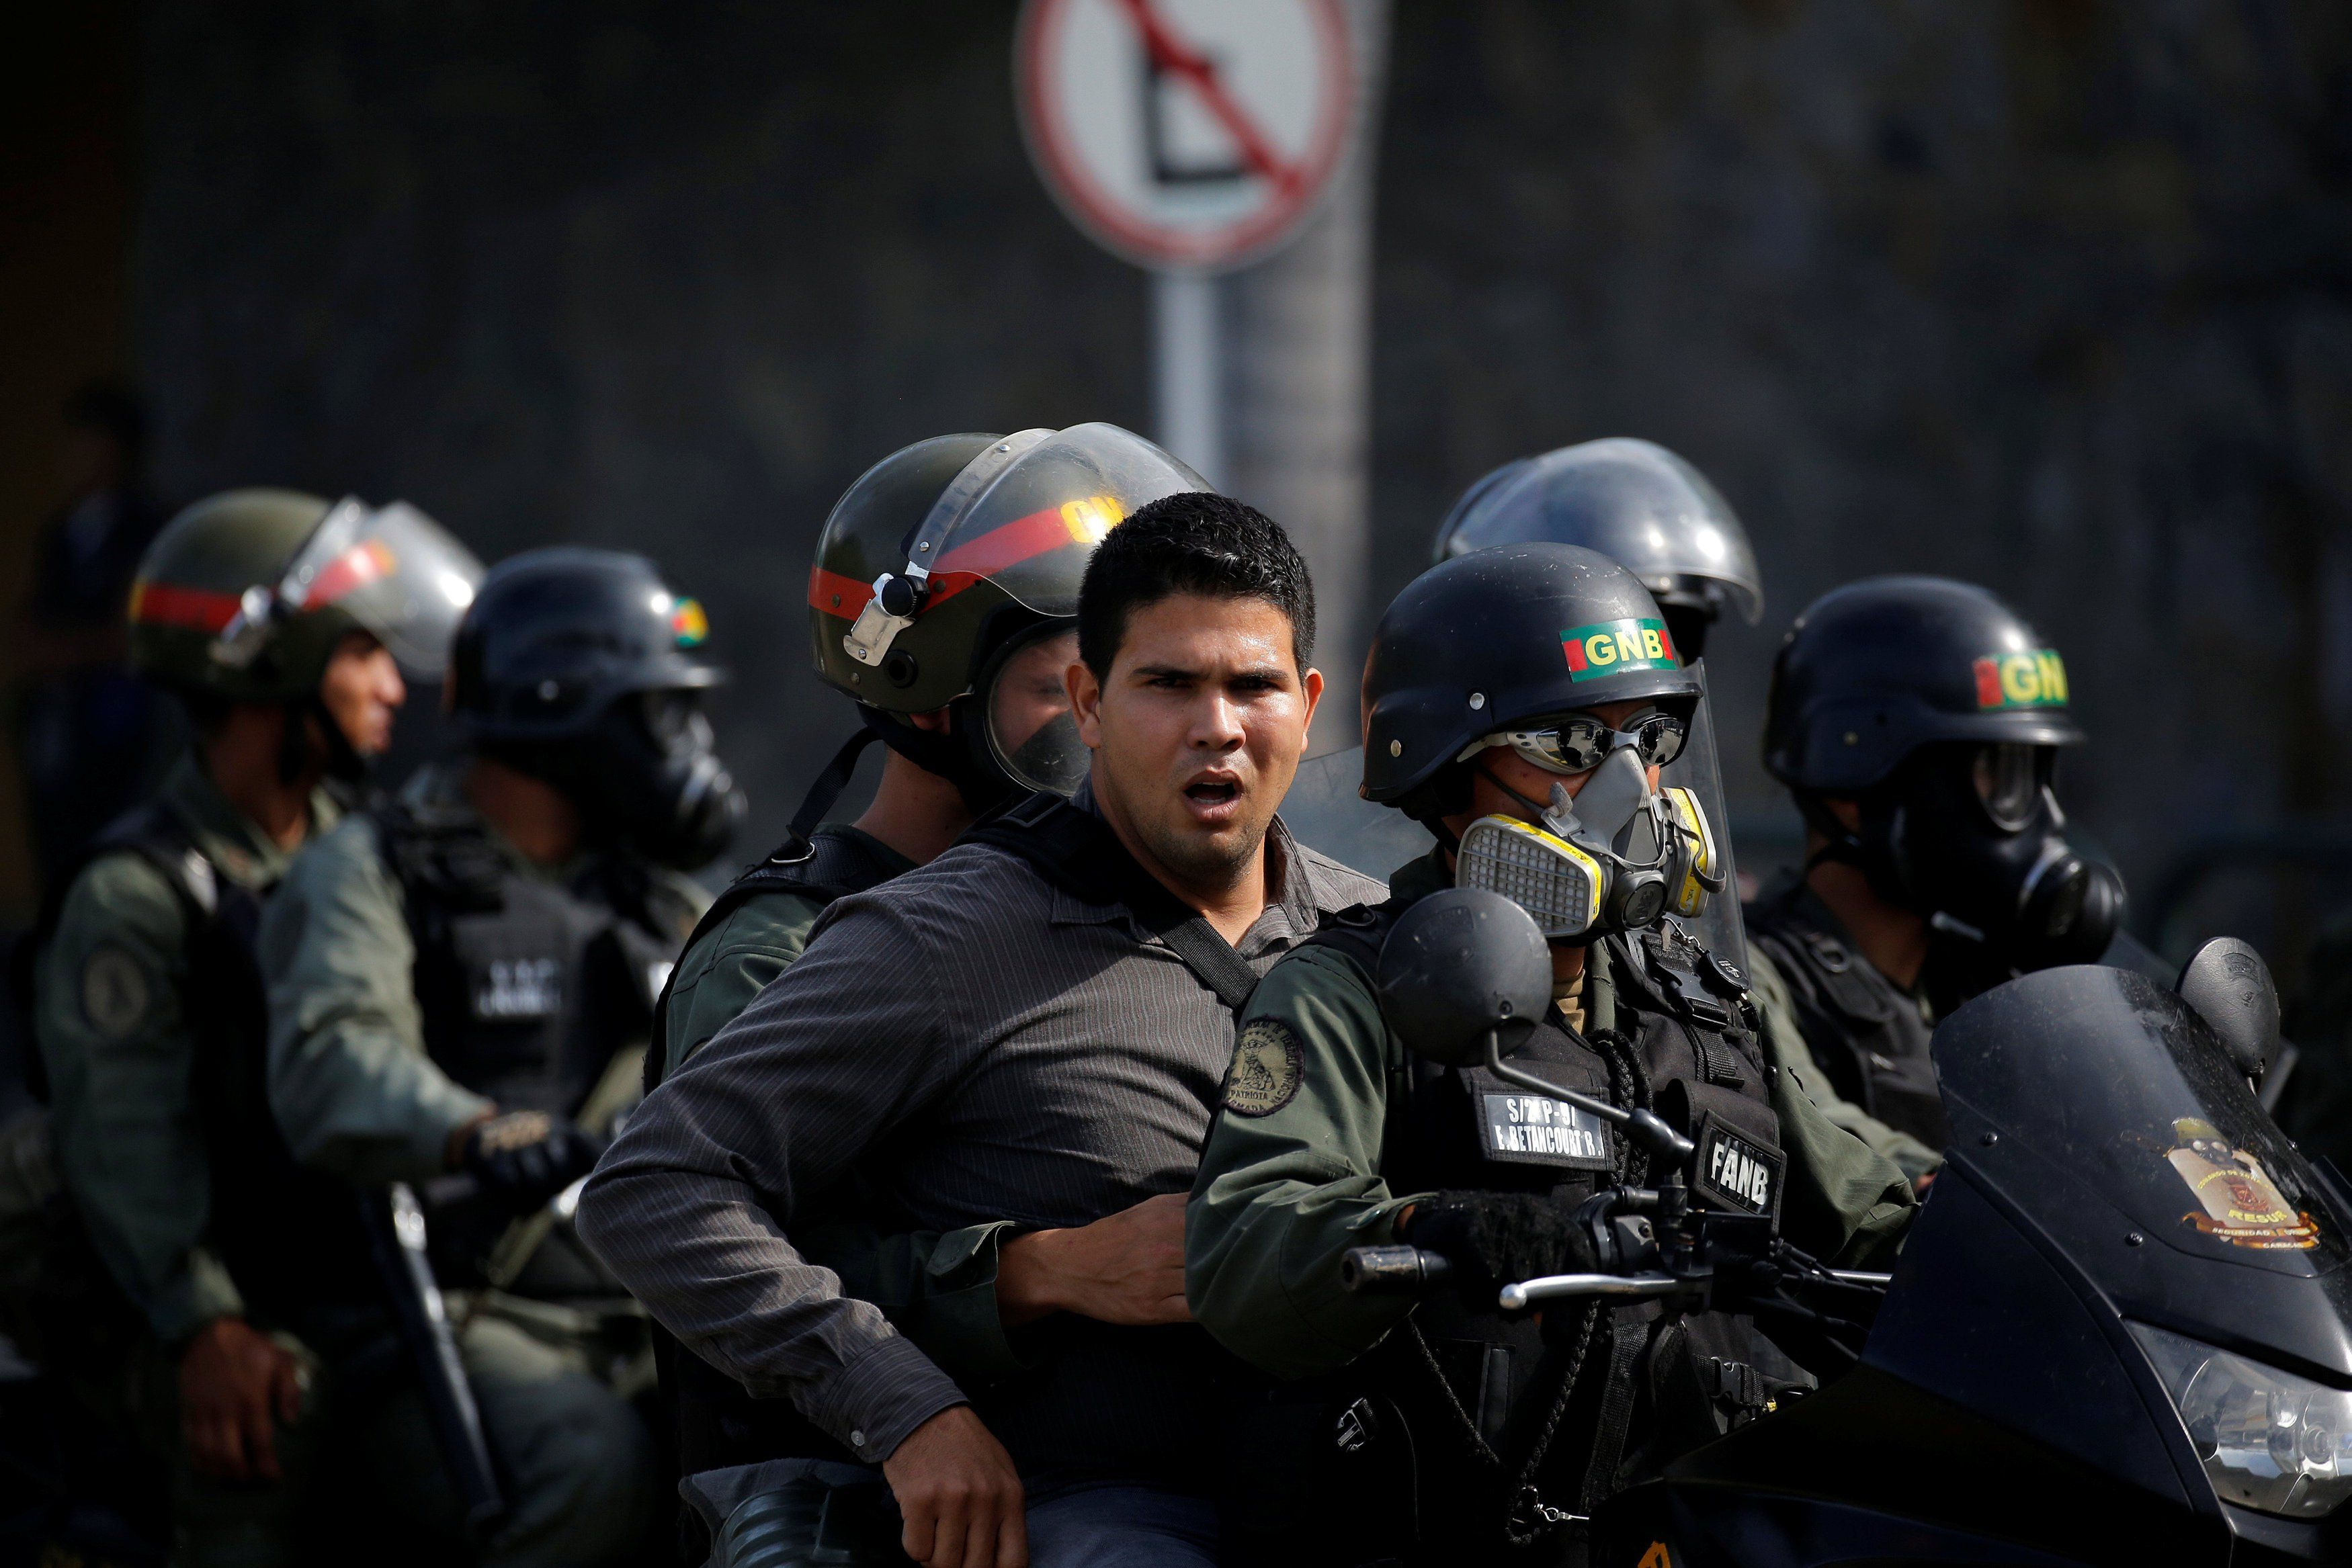 Riot security forces escort an unidentified man during a rally against President Nicolas Maduro in Caracas, Venezuela, May 24, 2017. REUTERS/Carlos Barria